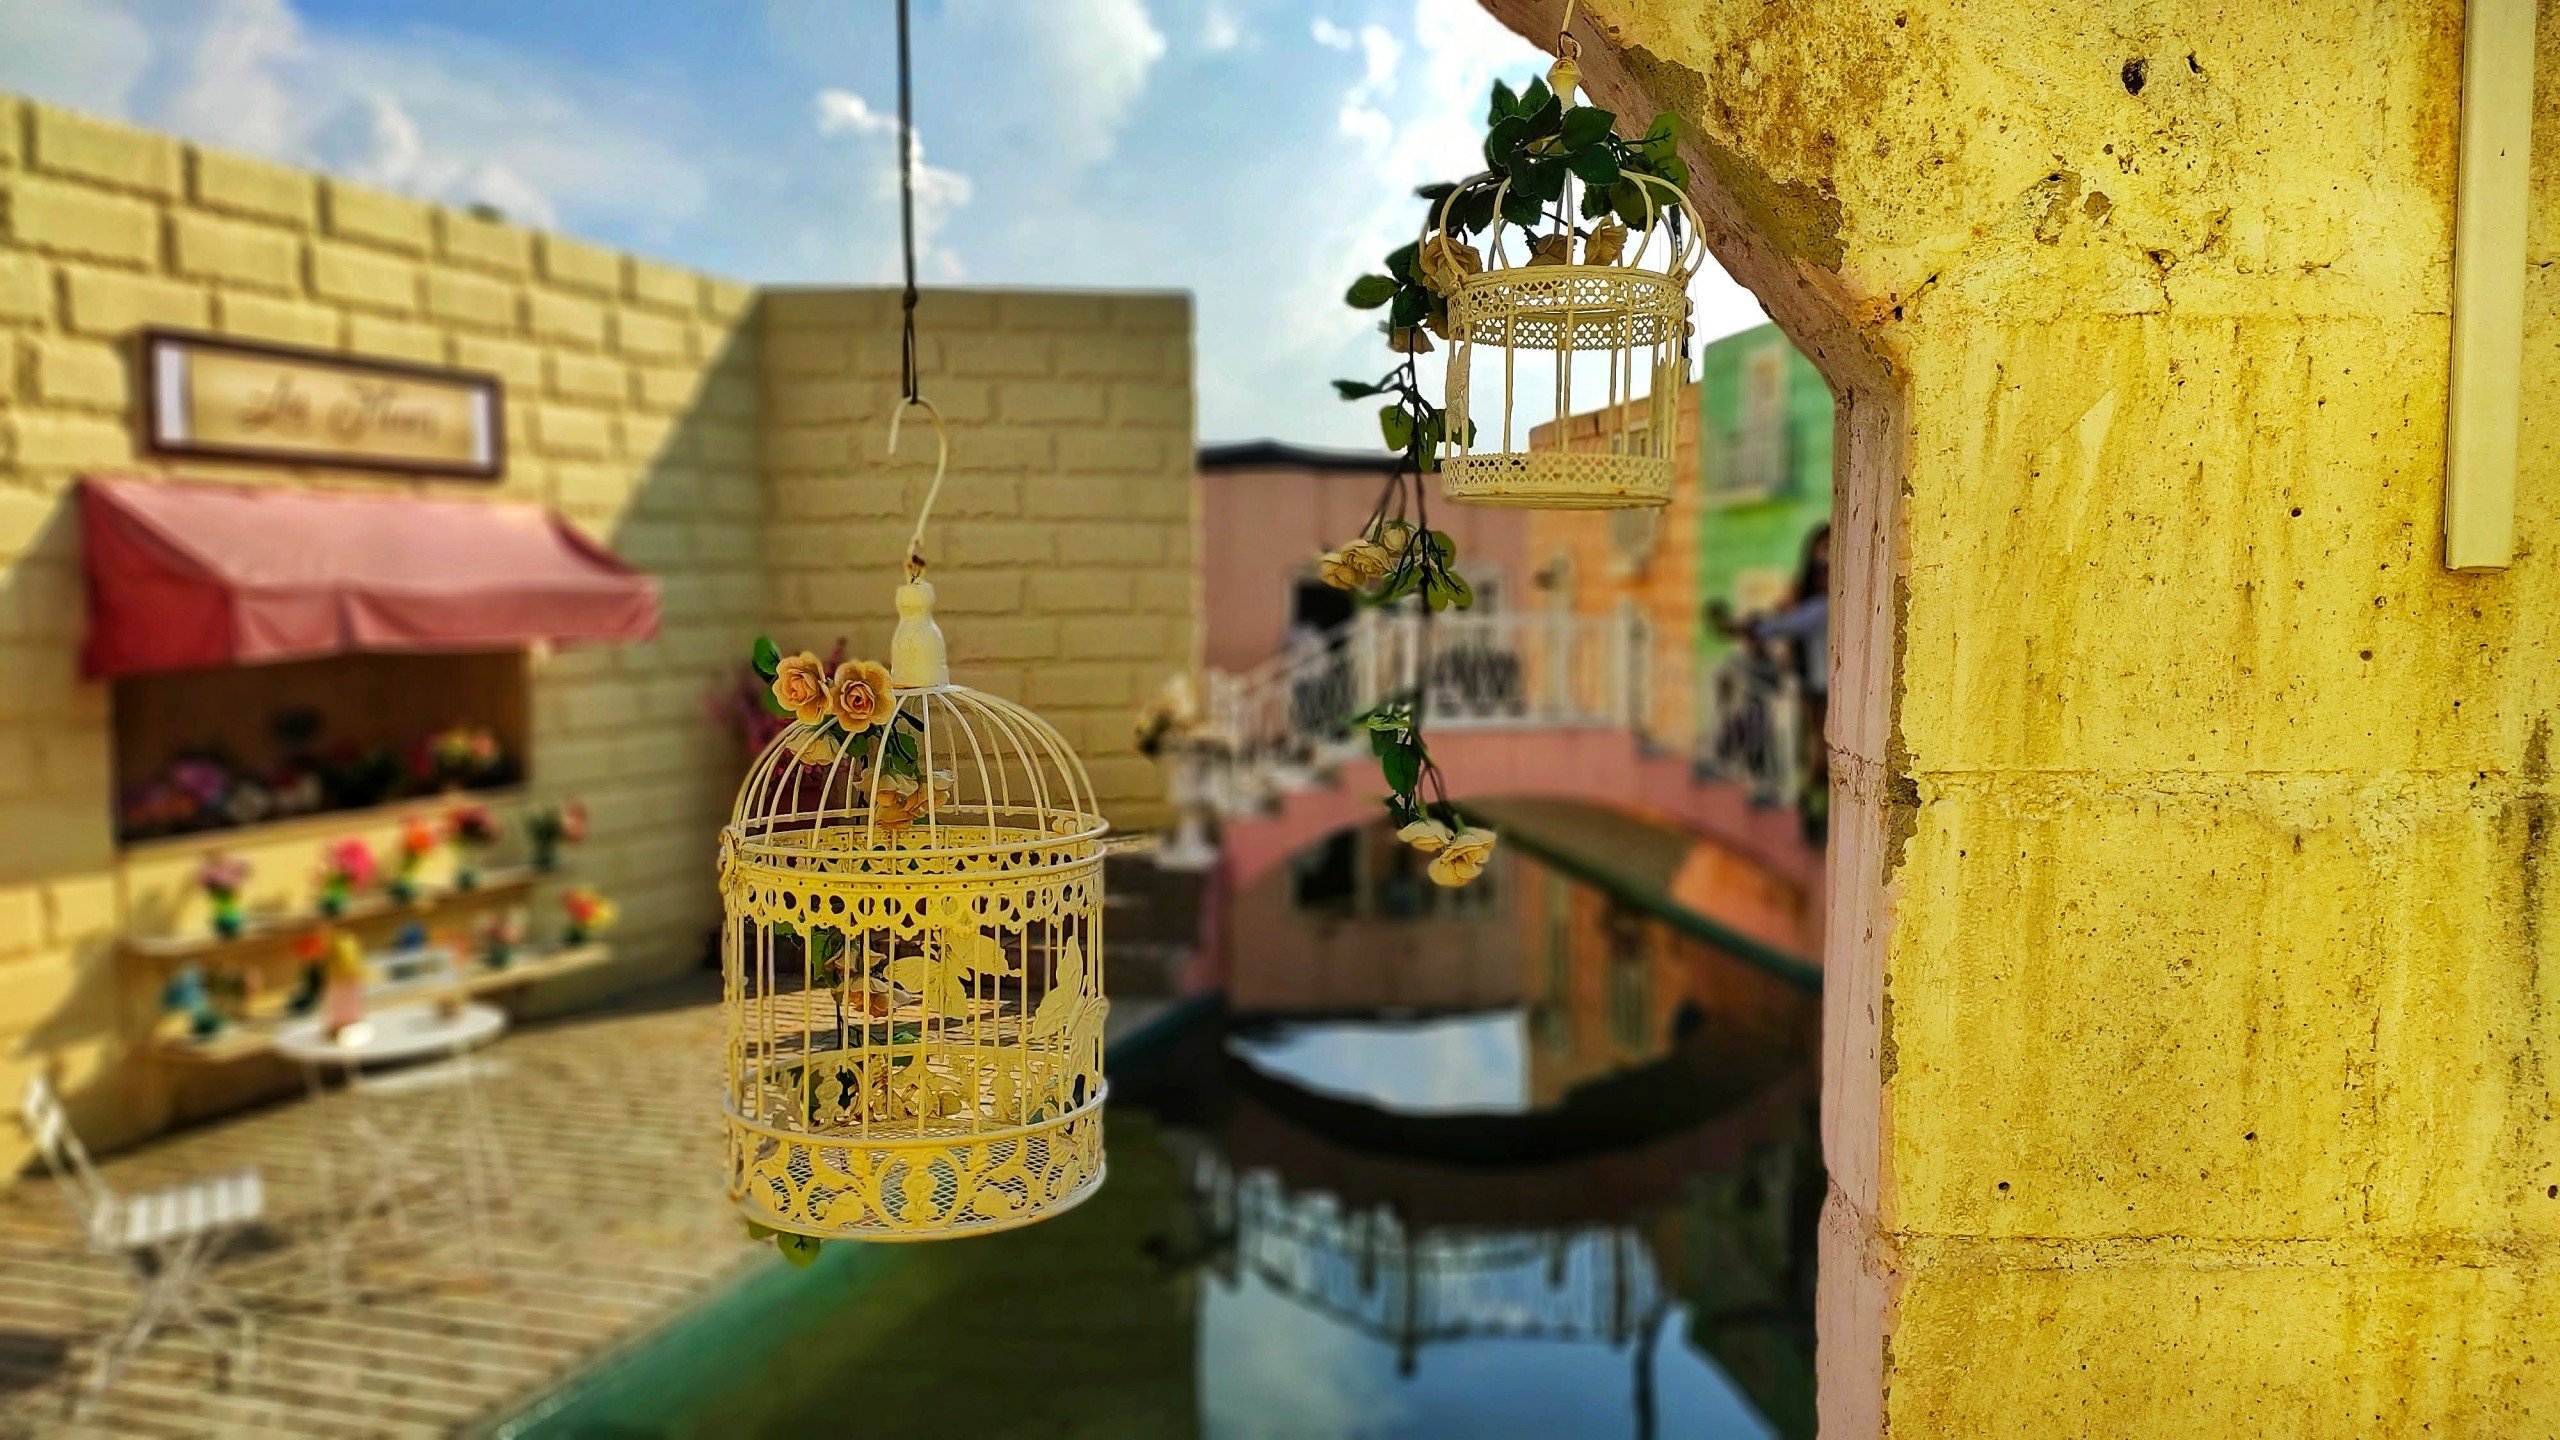 Bird cage in a house